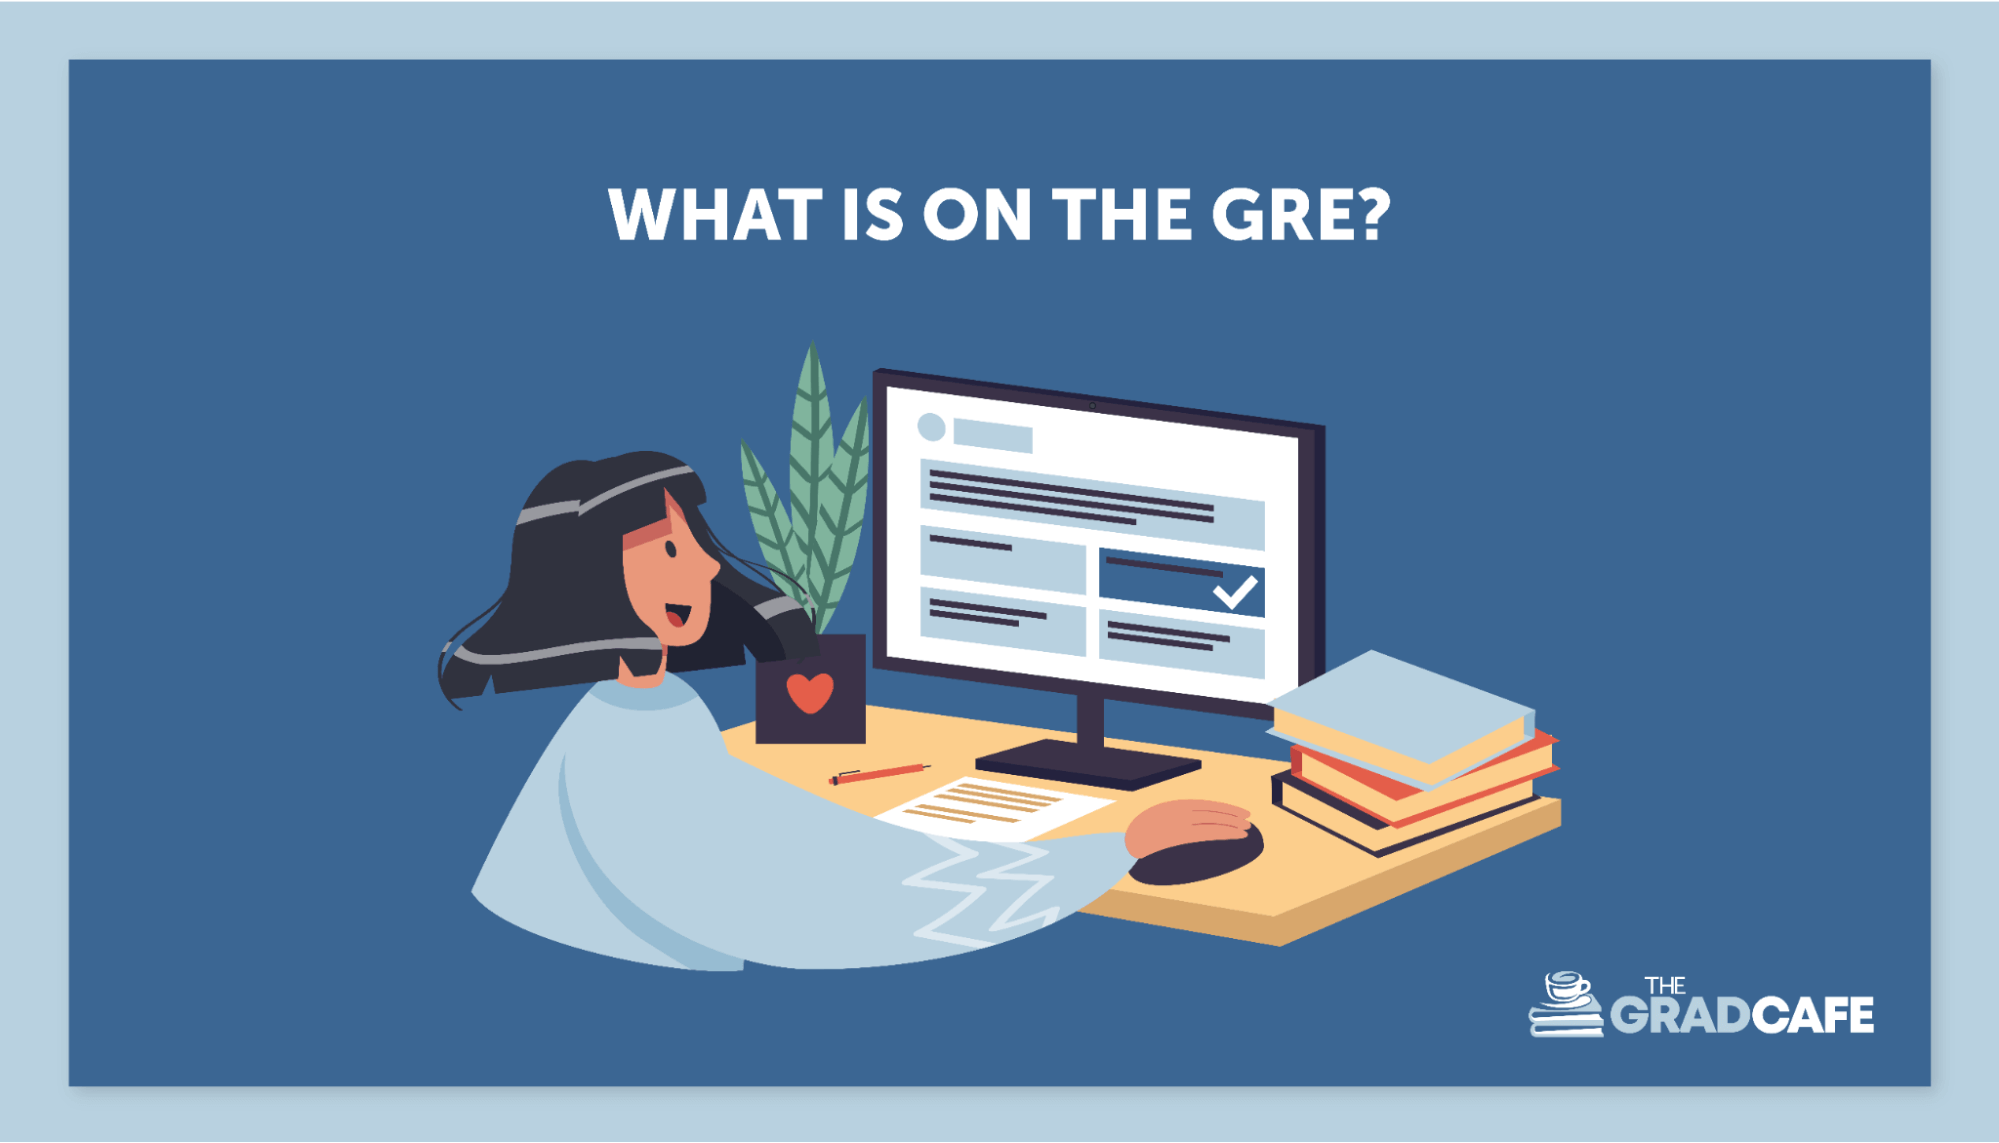 Visit the ETS website for more information on the GRE exam